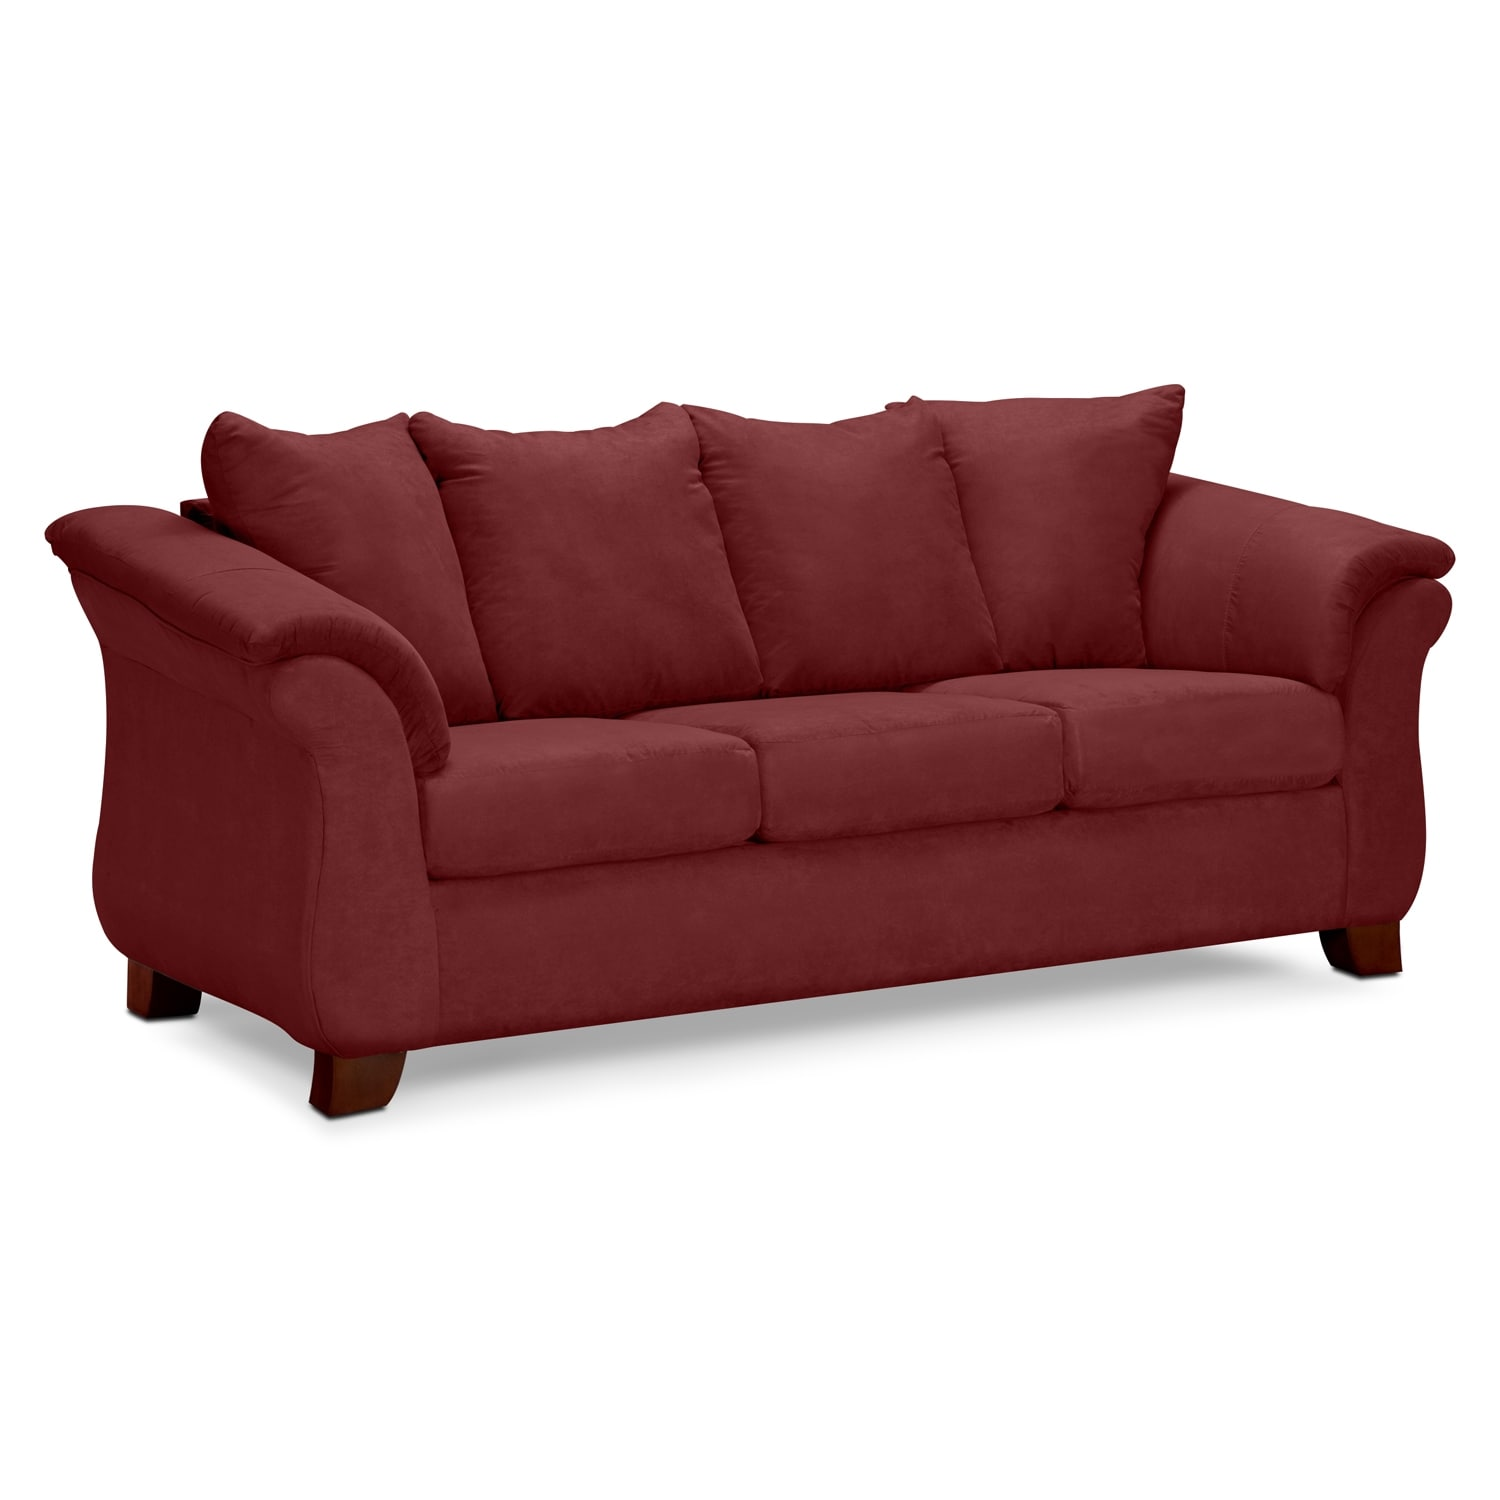 Living Room Furniture - Adrian Sofa - Red